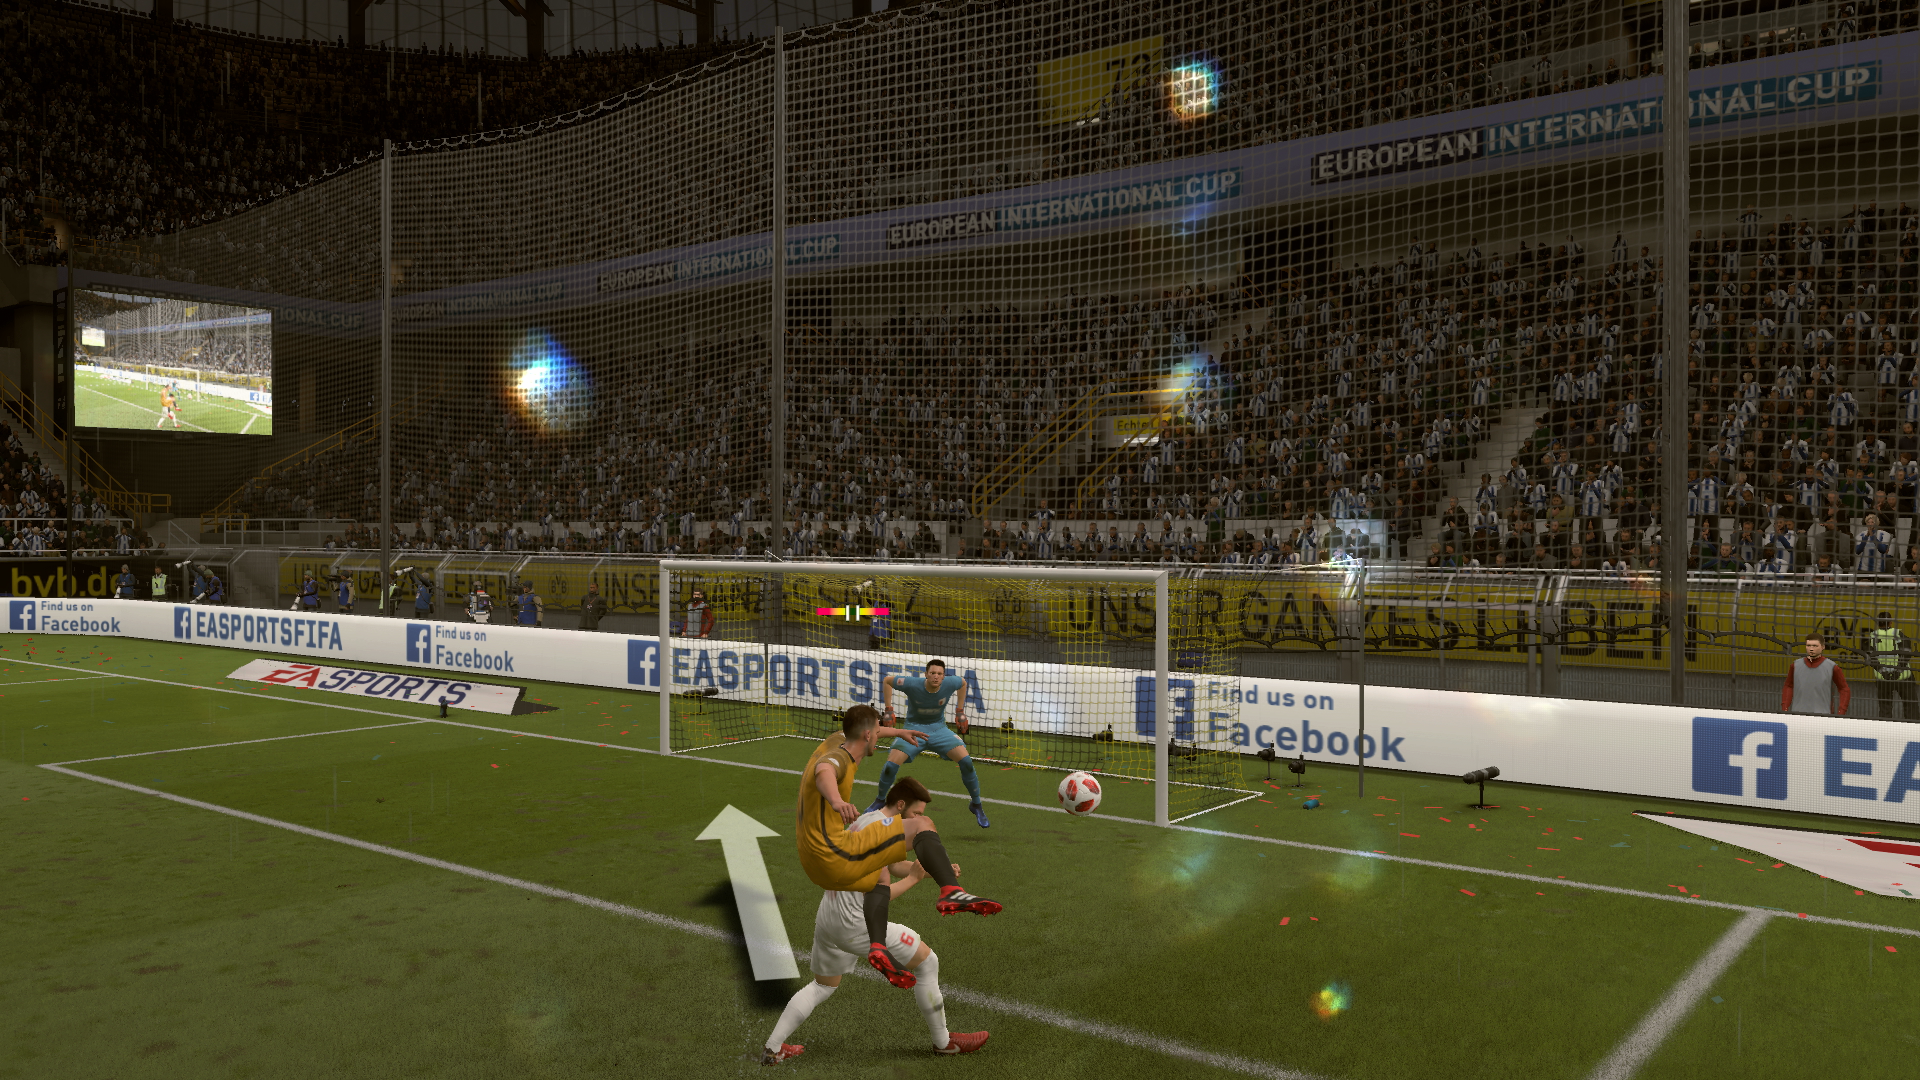 FIFA 19 Goal Scoring - What is the Best Attacking Formation